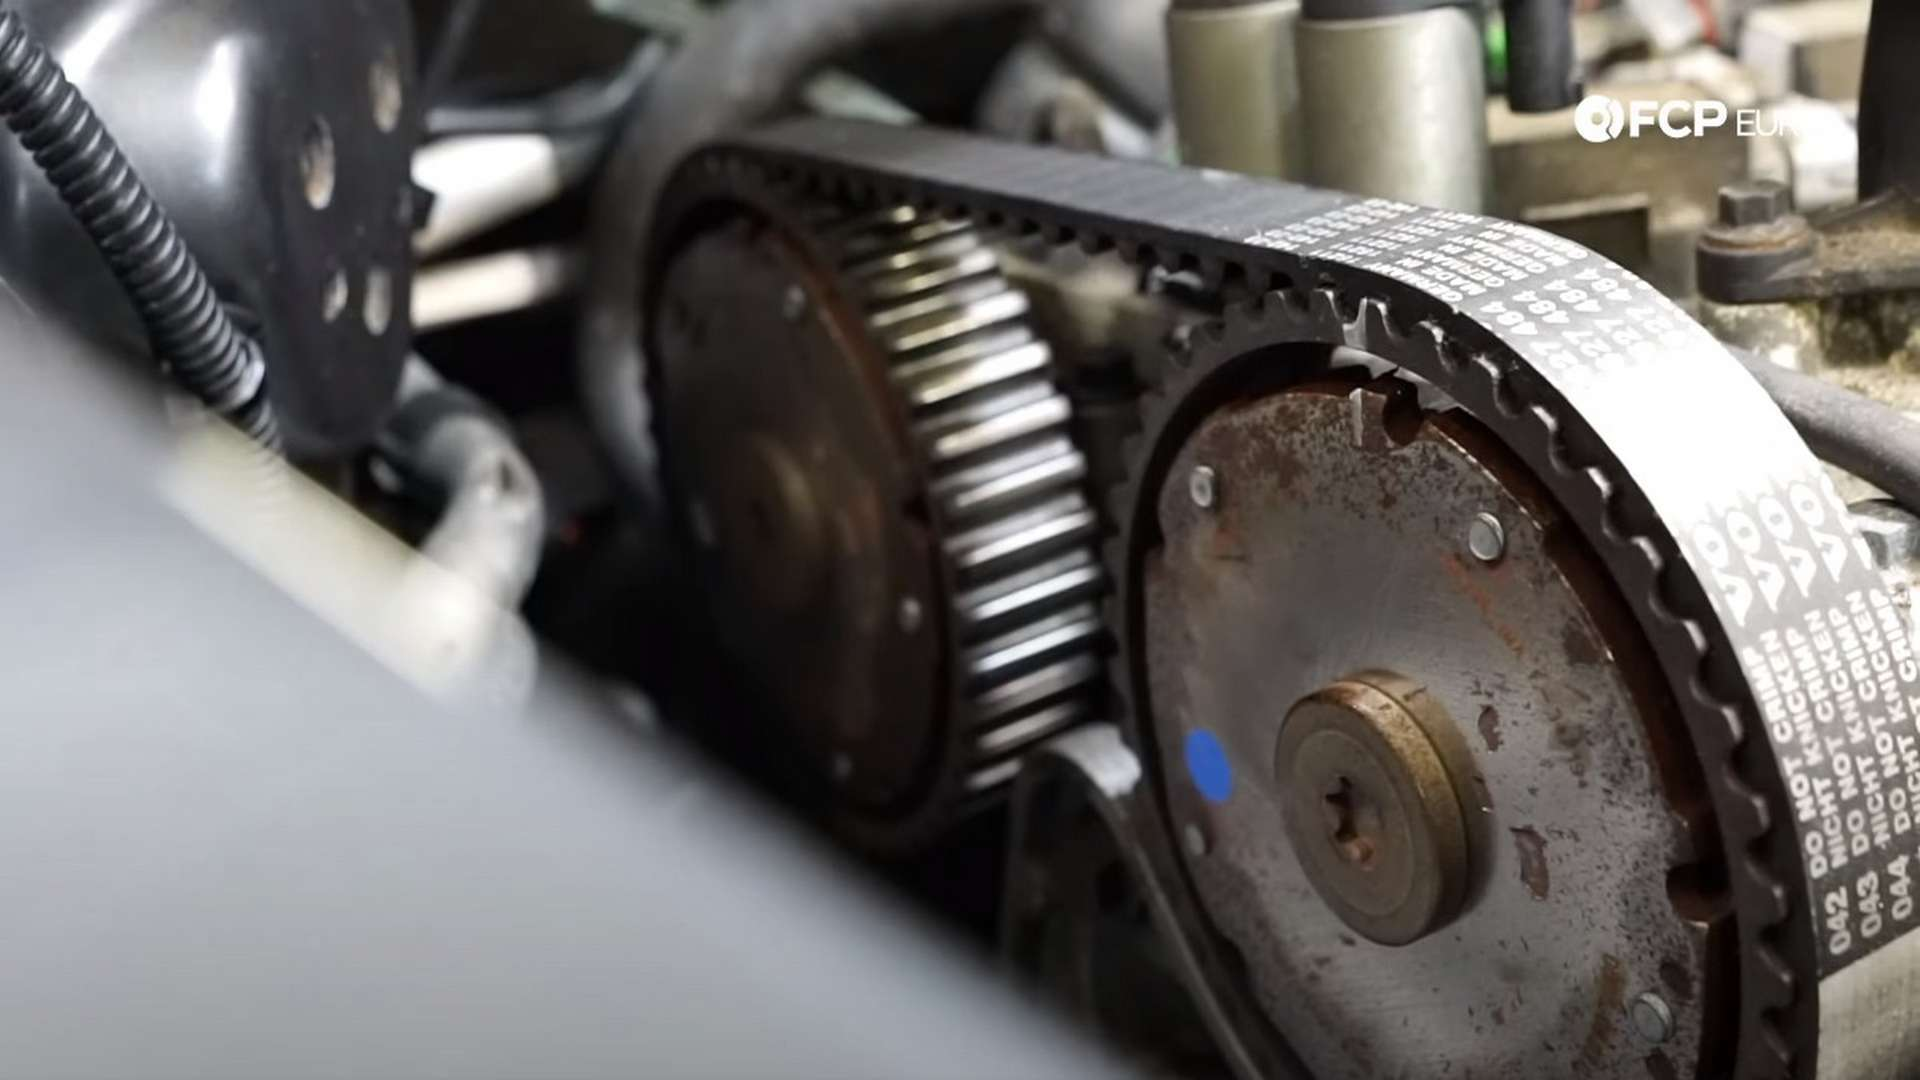 How To Replace The Water Pump On A Volvo P1 (Volvo C30, C70, S40, & S50)